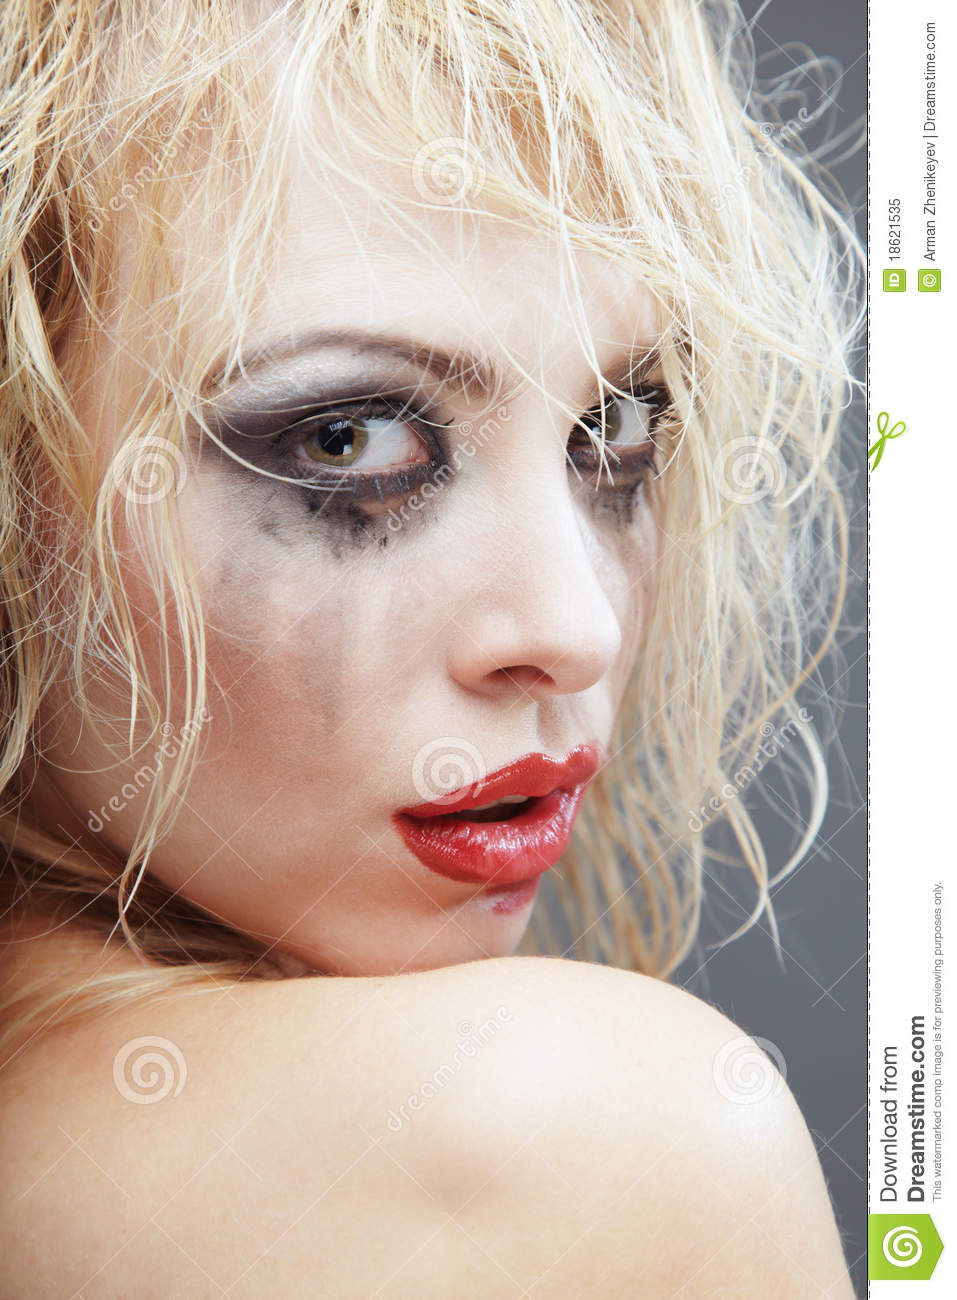 Bizarre Beauty Stock Image Image Of Head Human Mascara